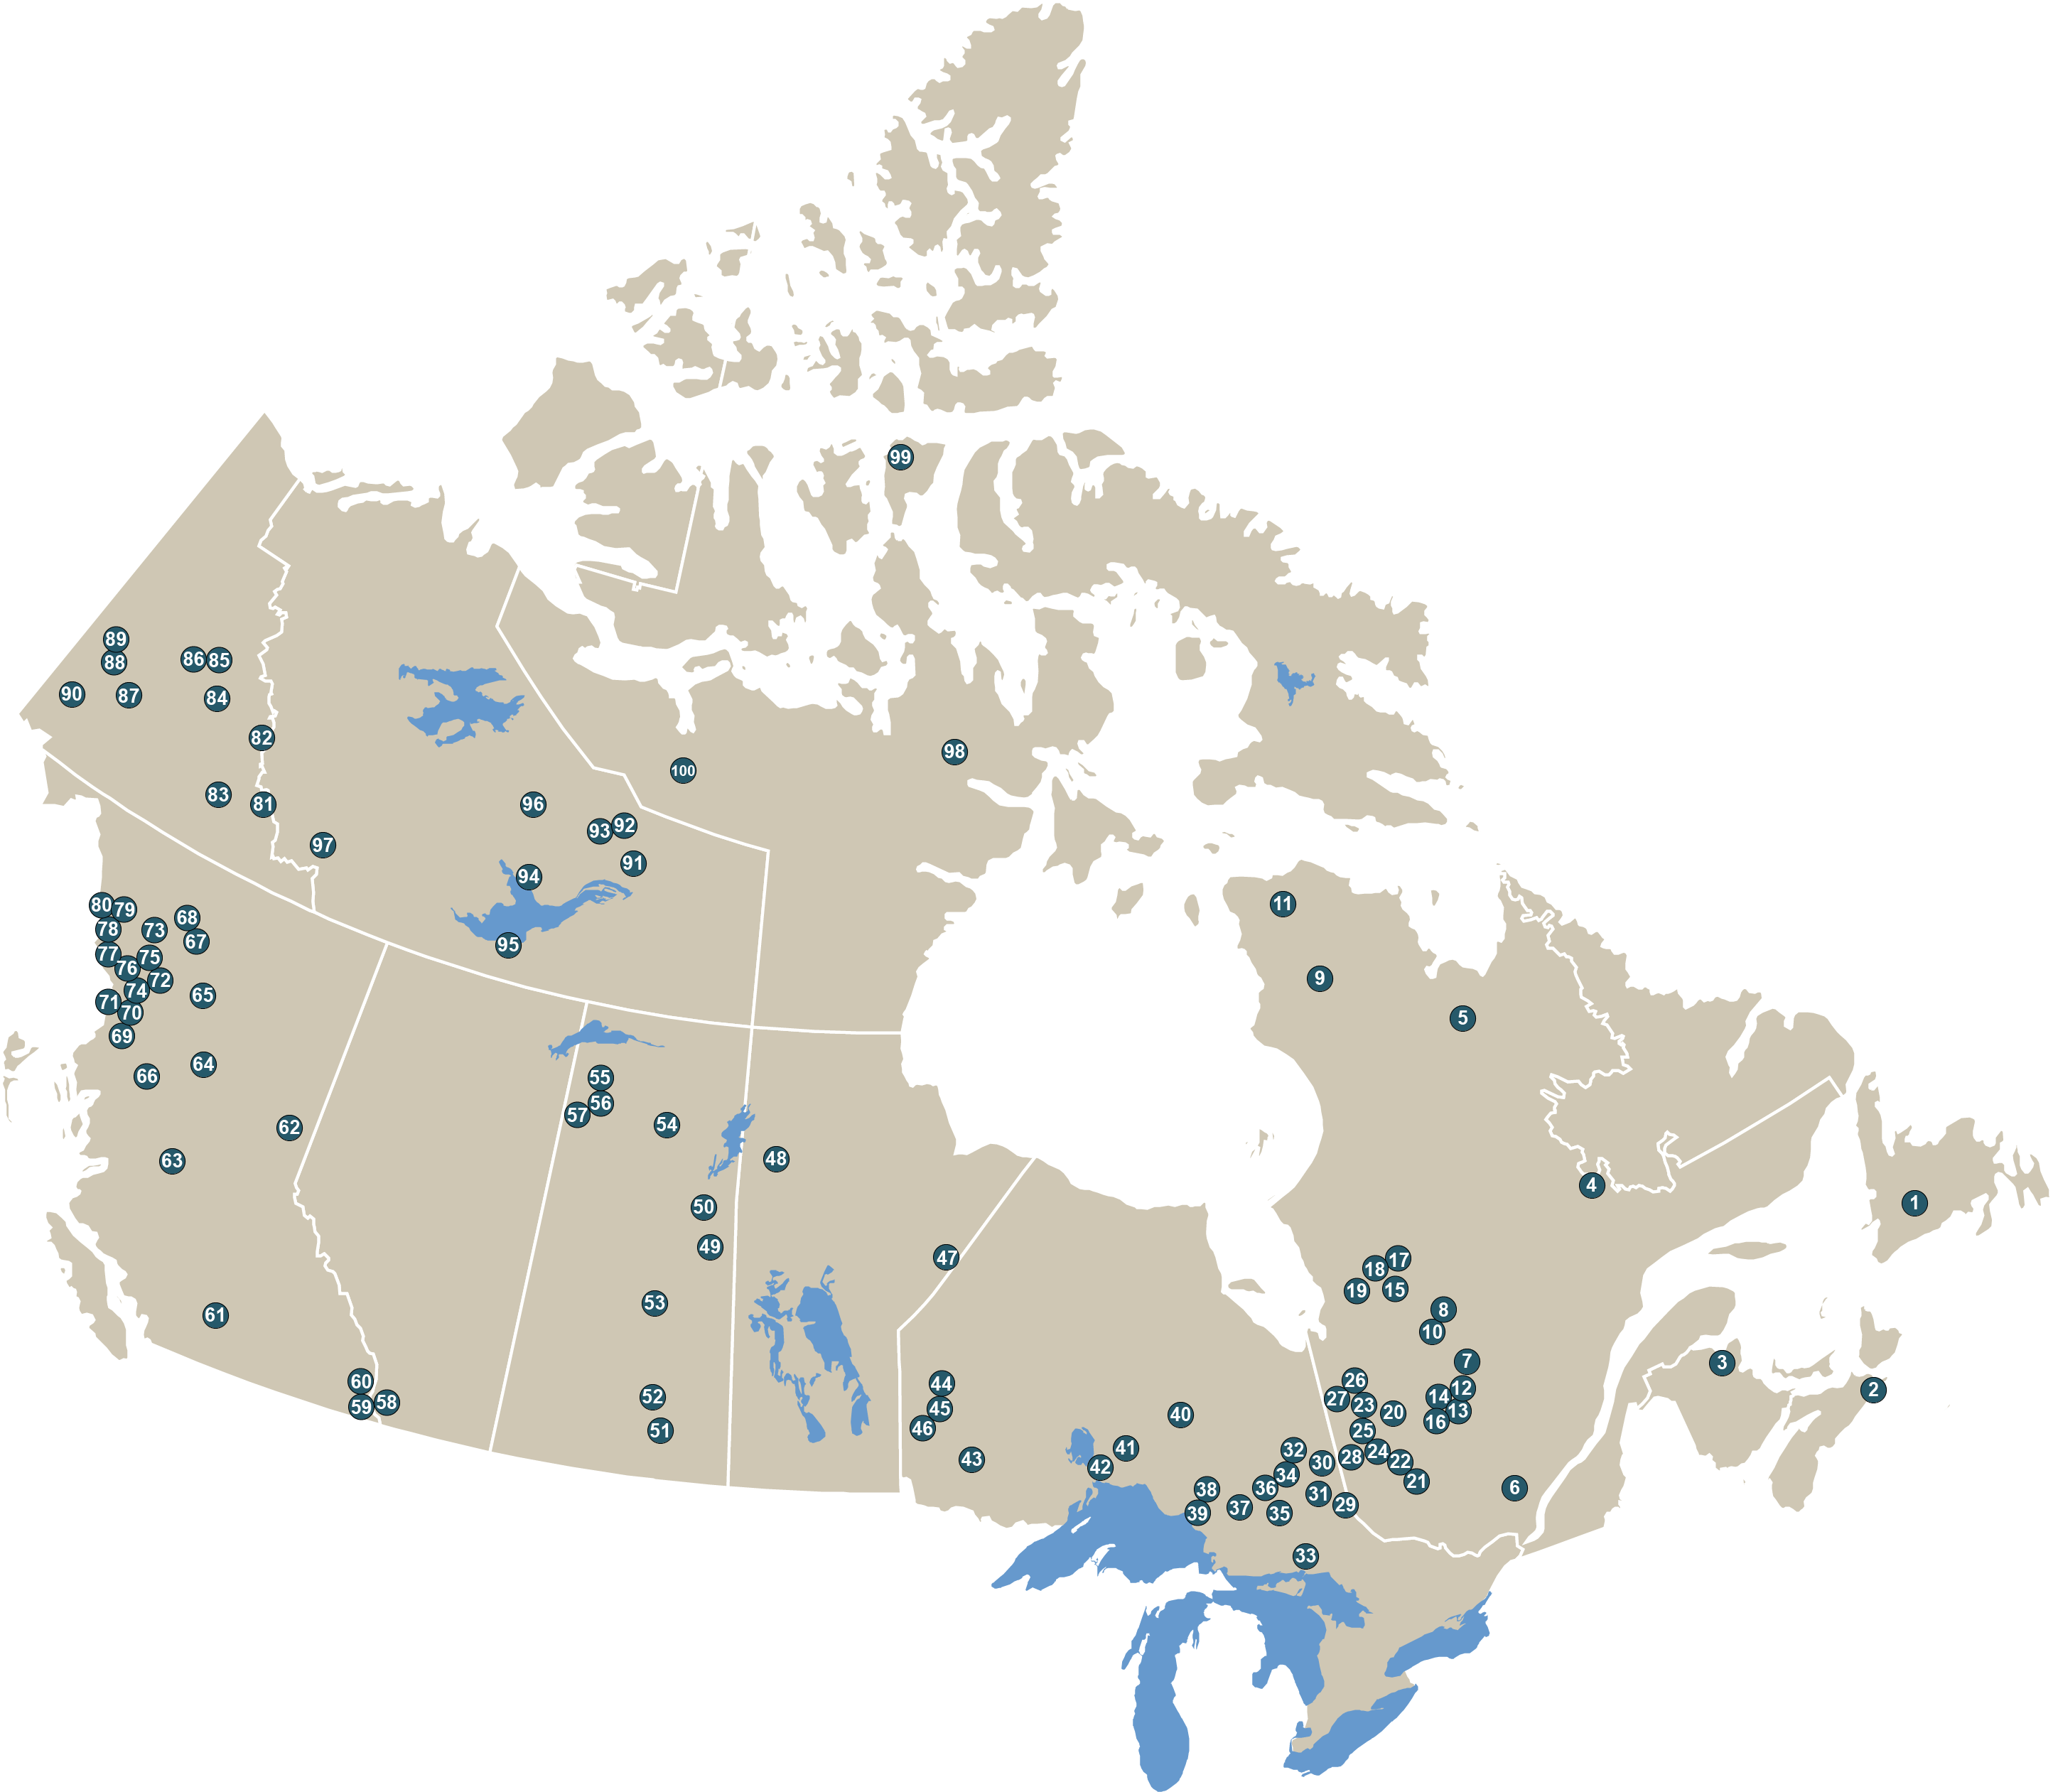 This image is a map of Canada that displays geographically, by province and territory, the locations of the top 100 off-mine-site exploration and deposit appraisal projects of 2018.